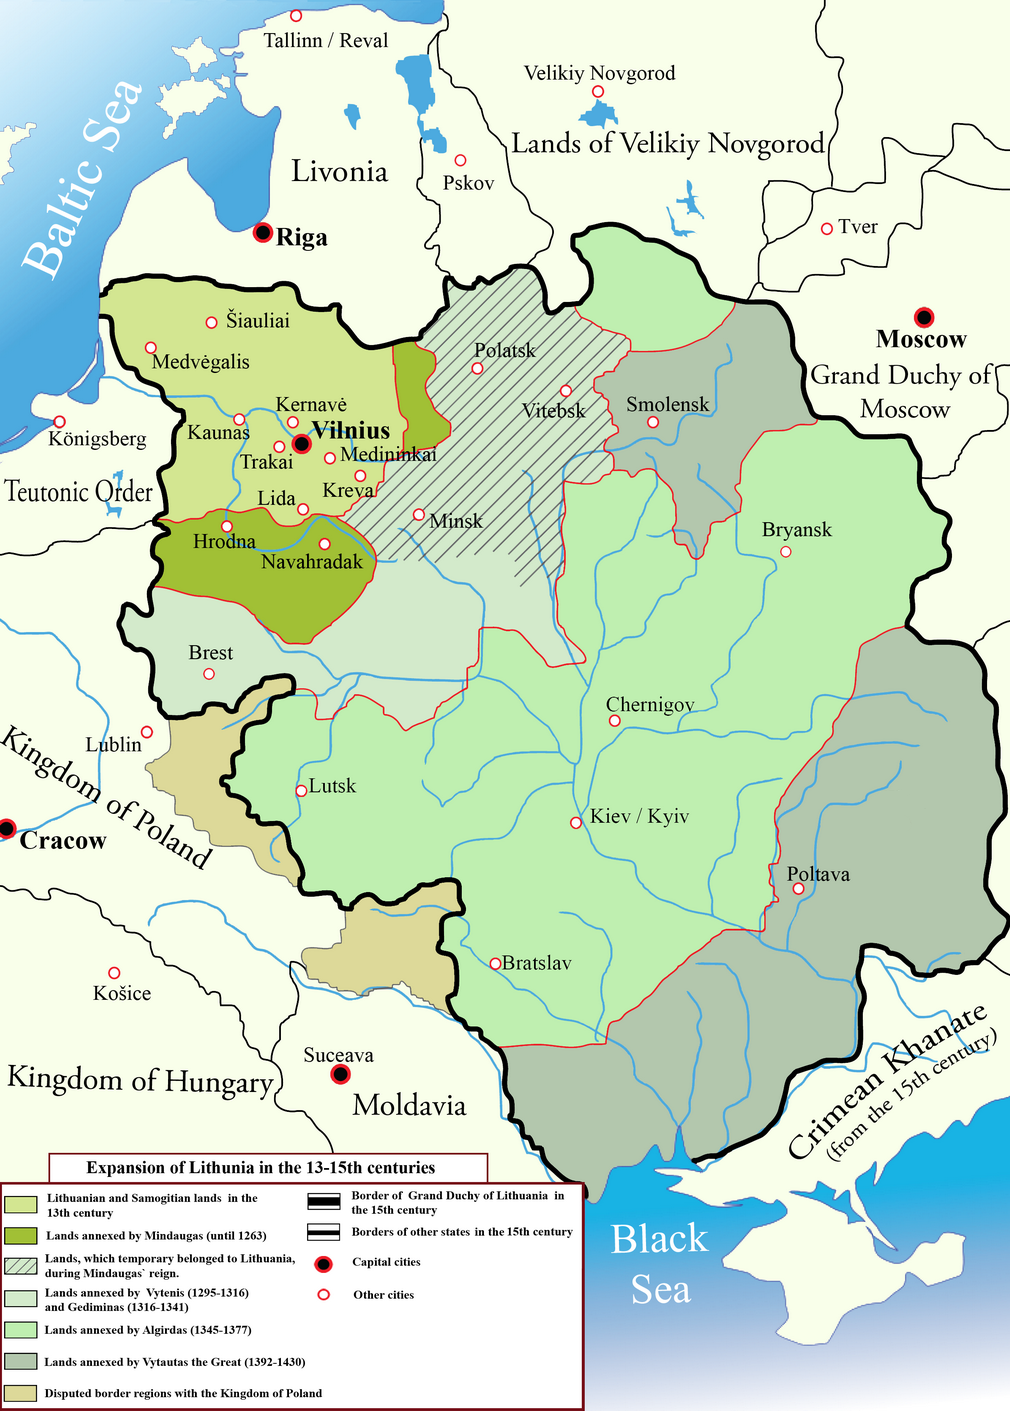 Atlas of Lithuania Wikimedia Commons